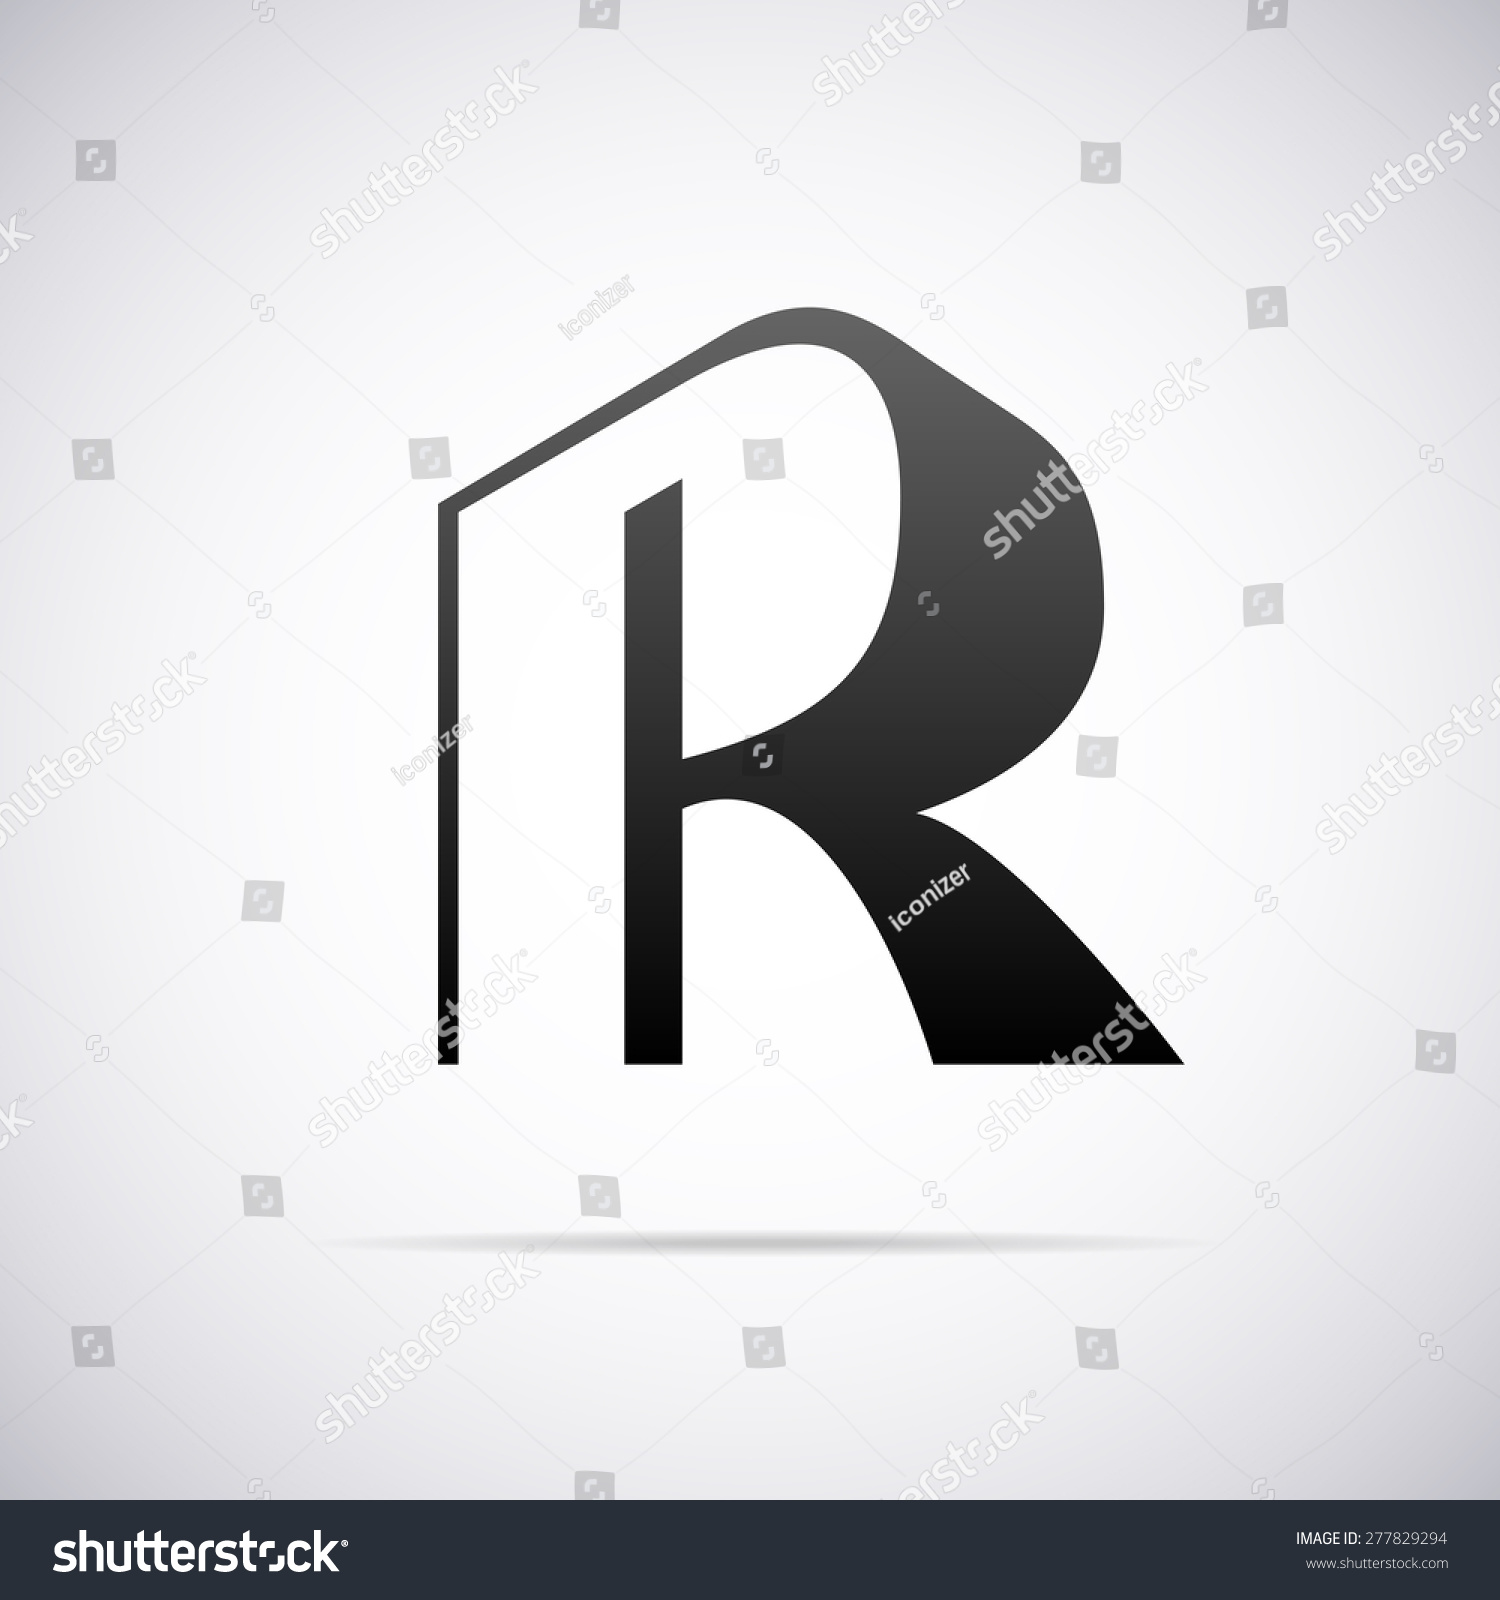 Vector Logo For Letter R Design Template - 277829294 ...